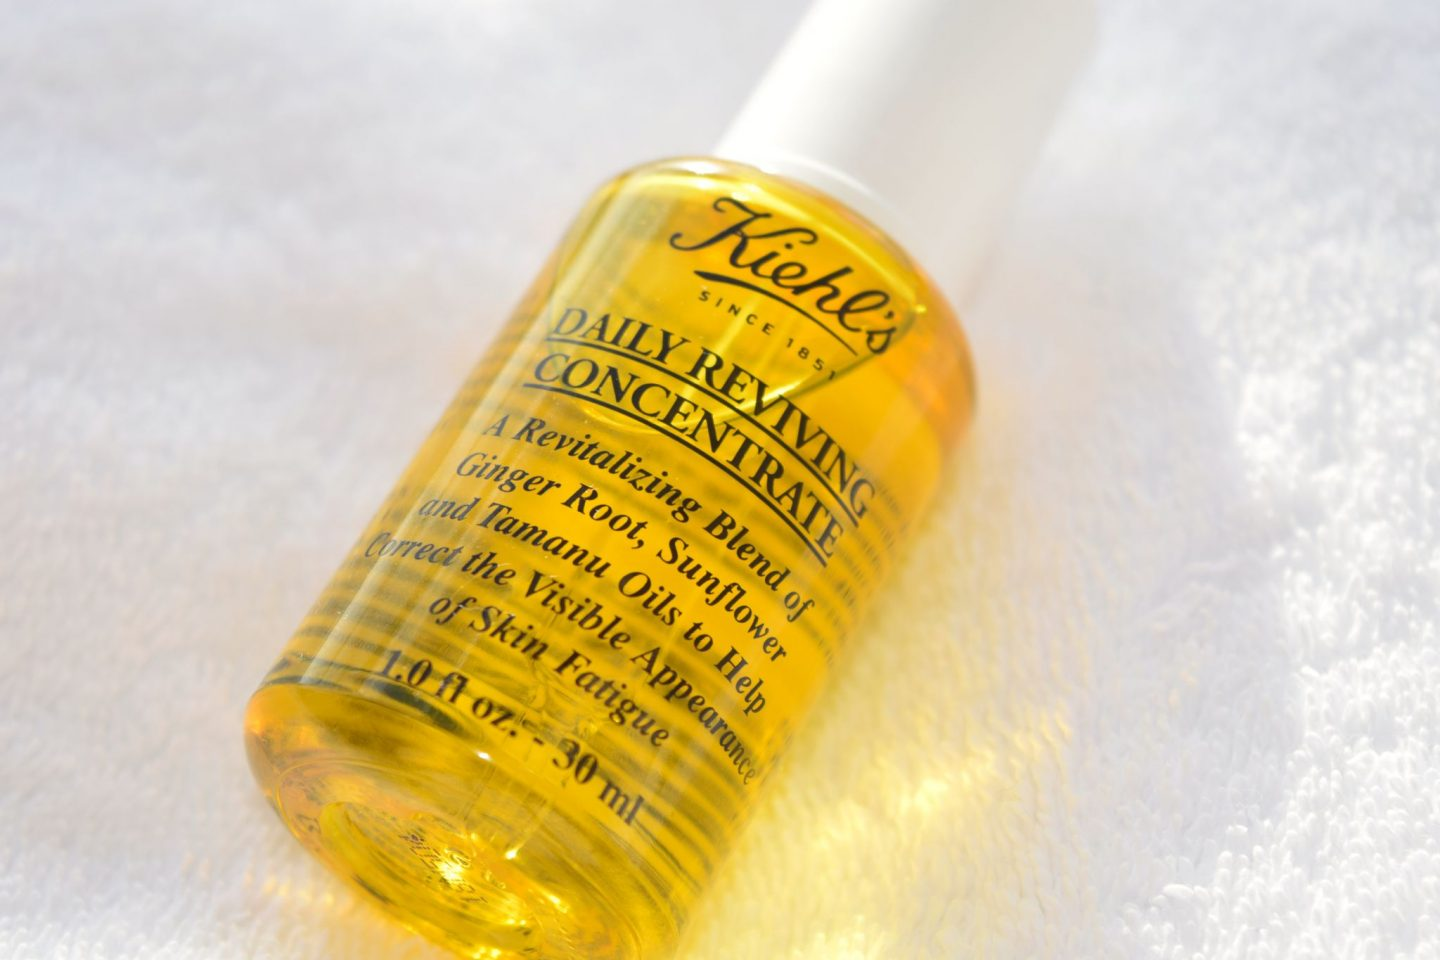 Kiehl's Daily Reviving Concentrate 1